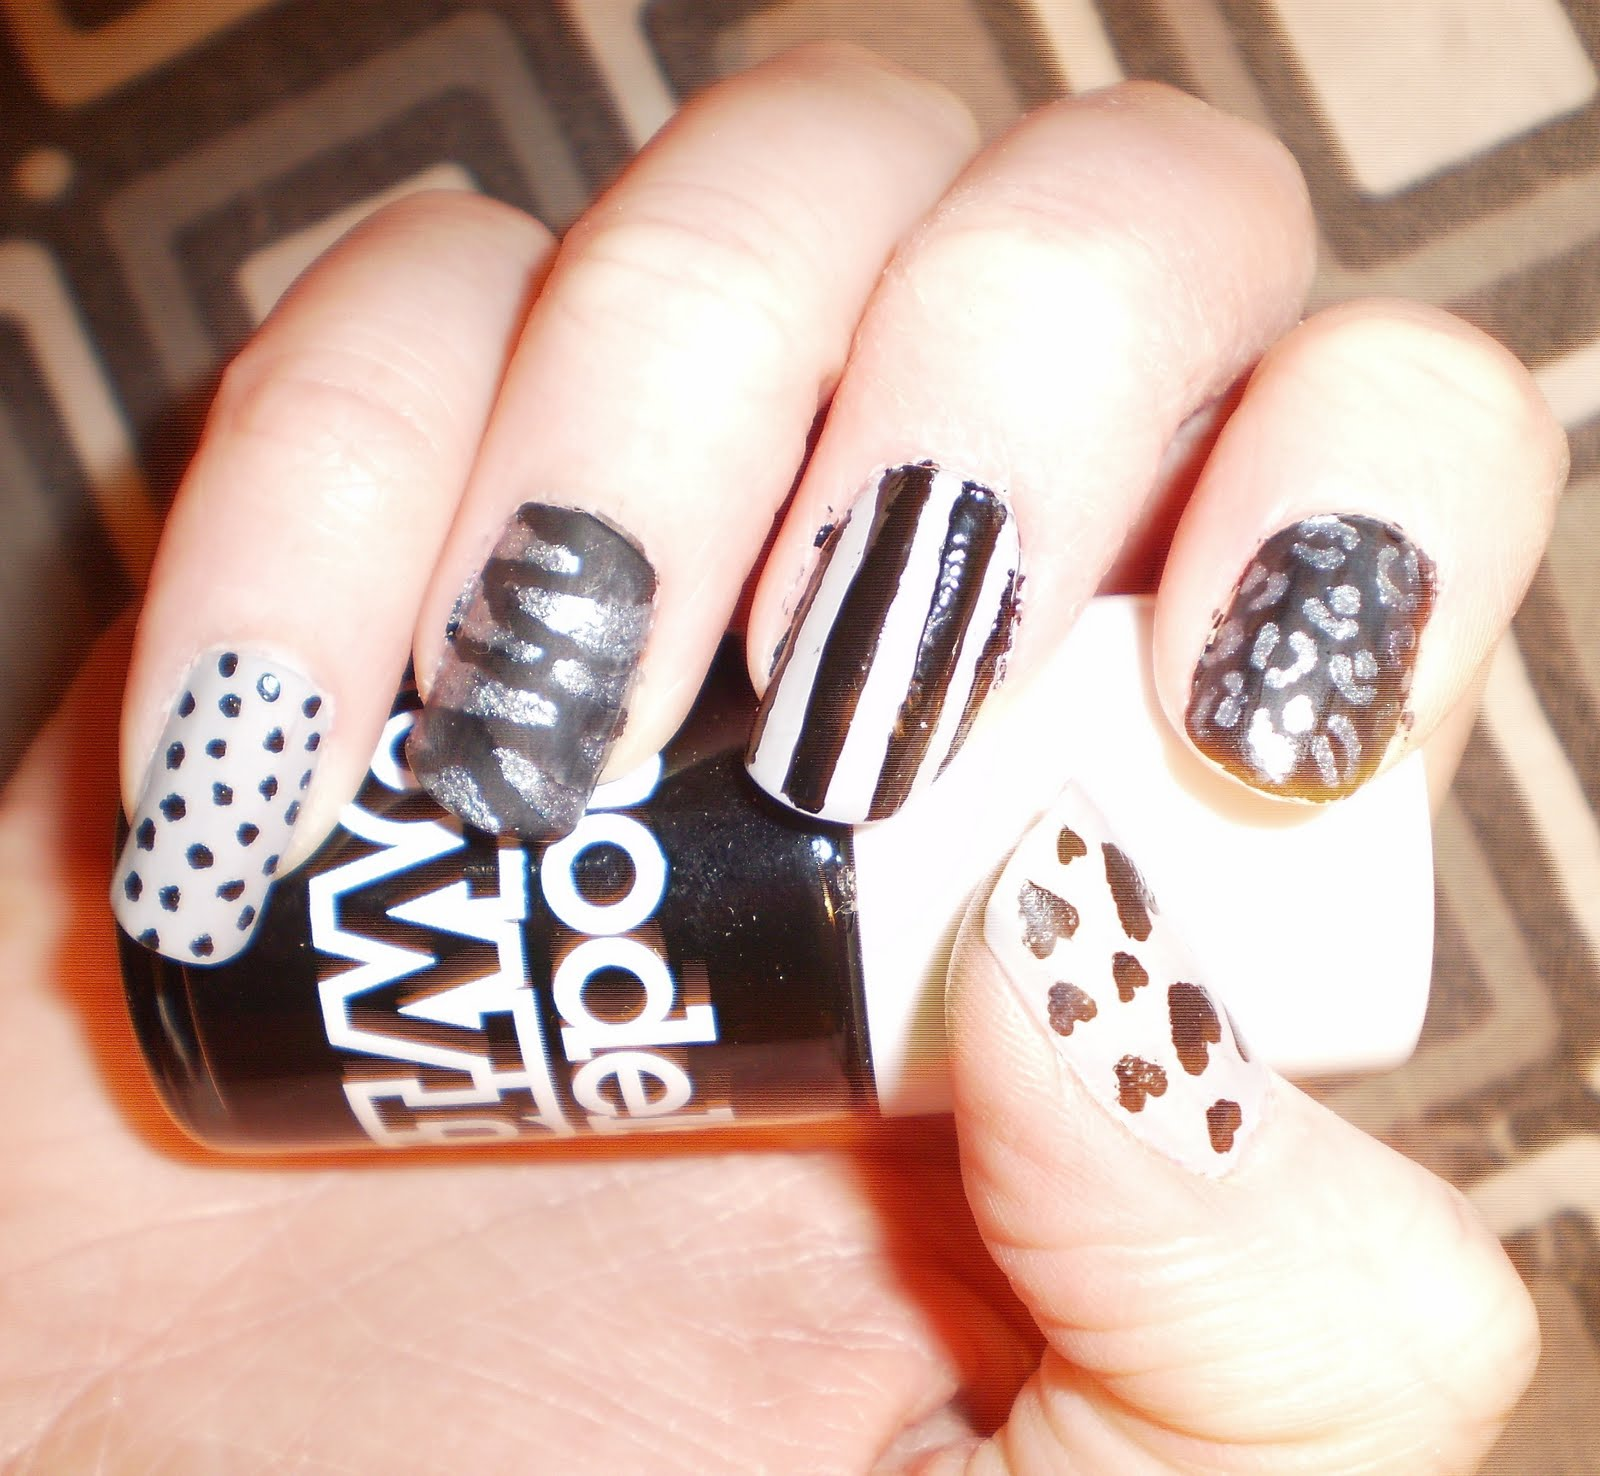 Superb silver nail designs nail picture art superb silver nail designs prinsesfo Choice Image